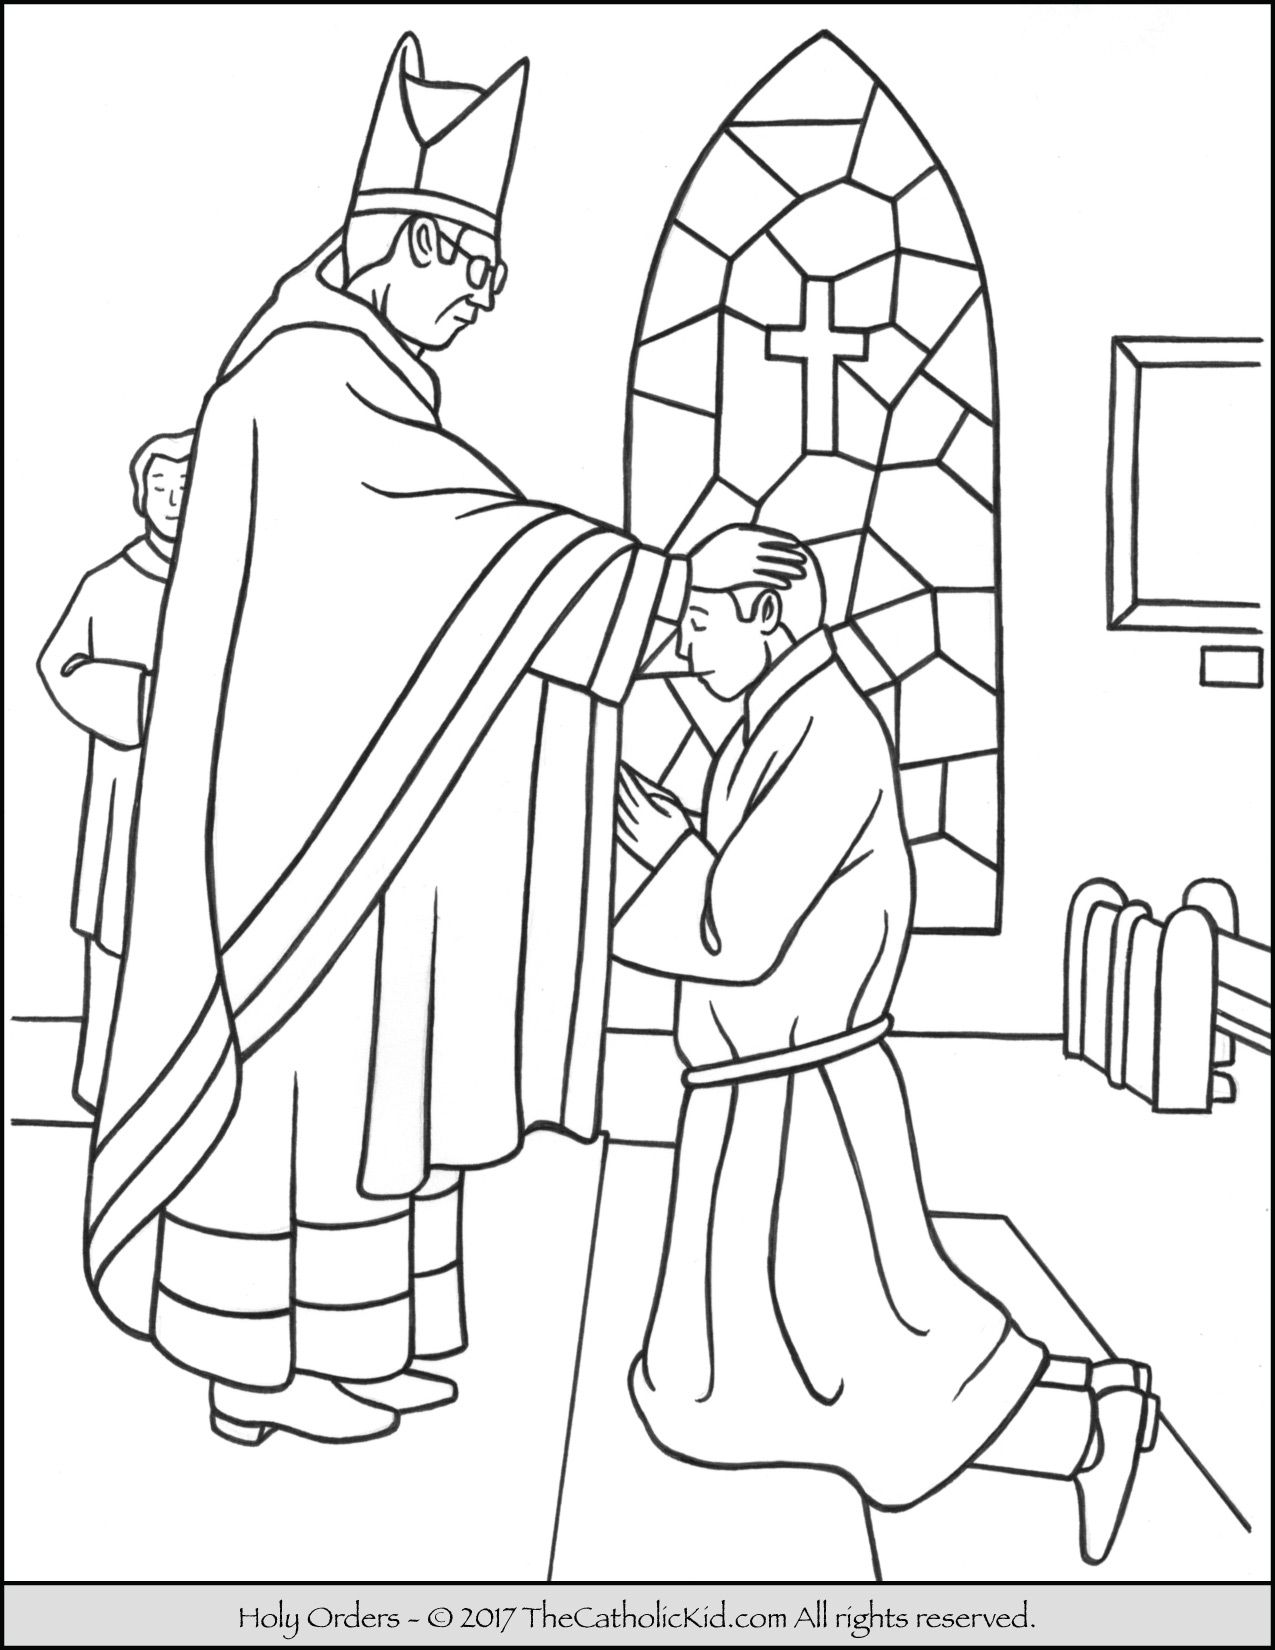 Sacrament Of Holy Orders Coloring Page Thecatholickid Com